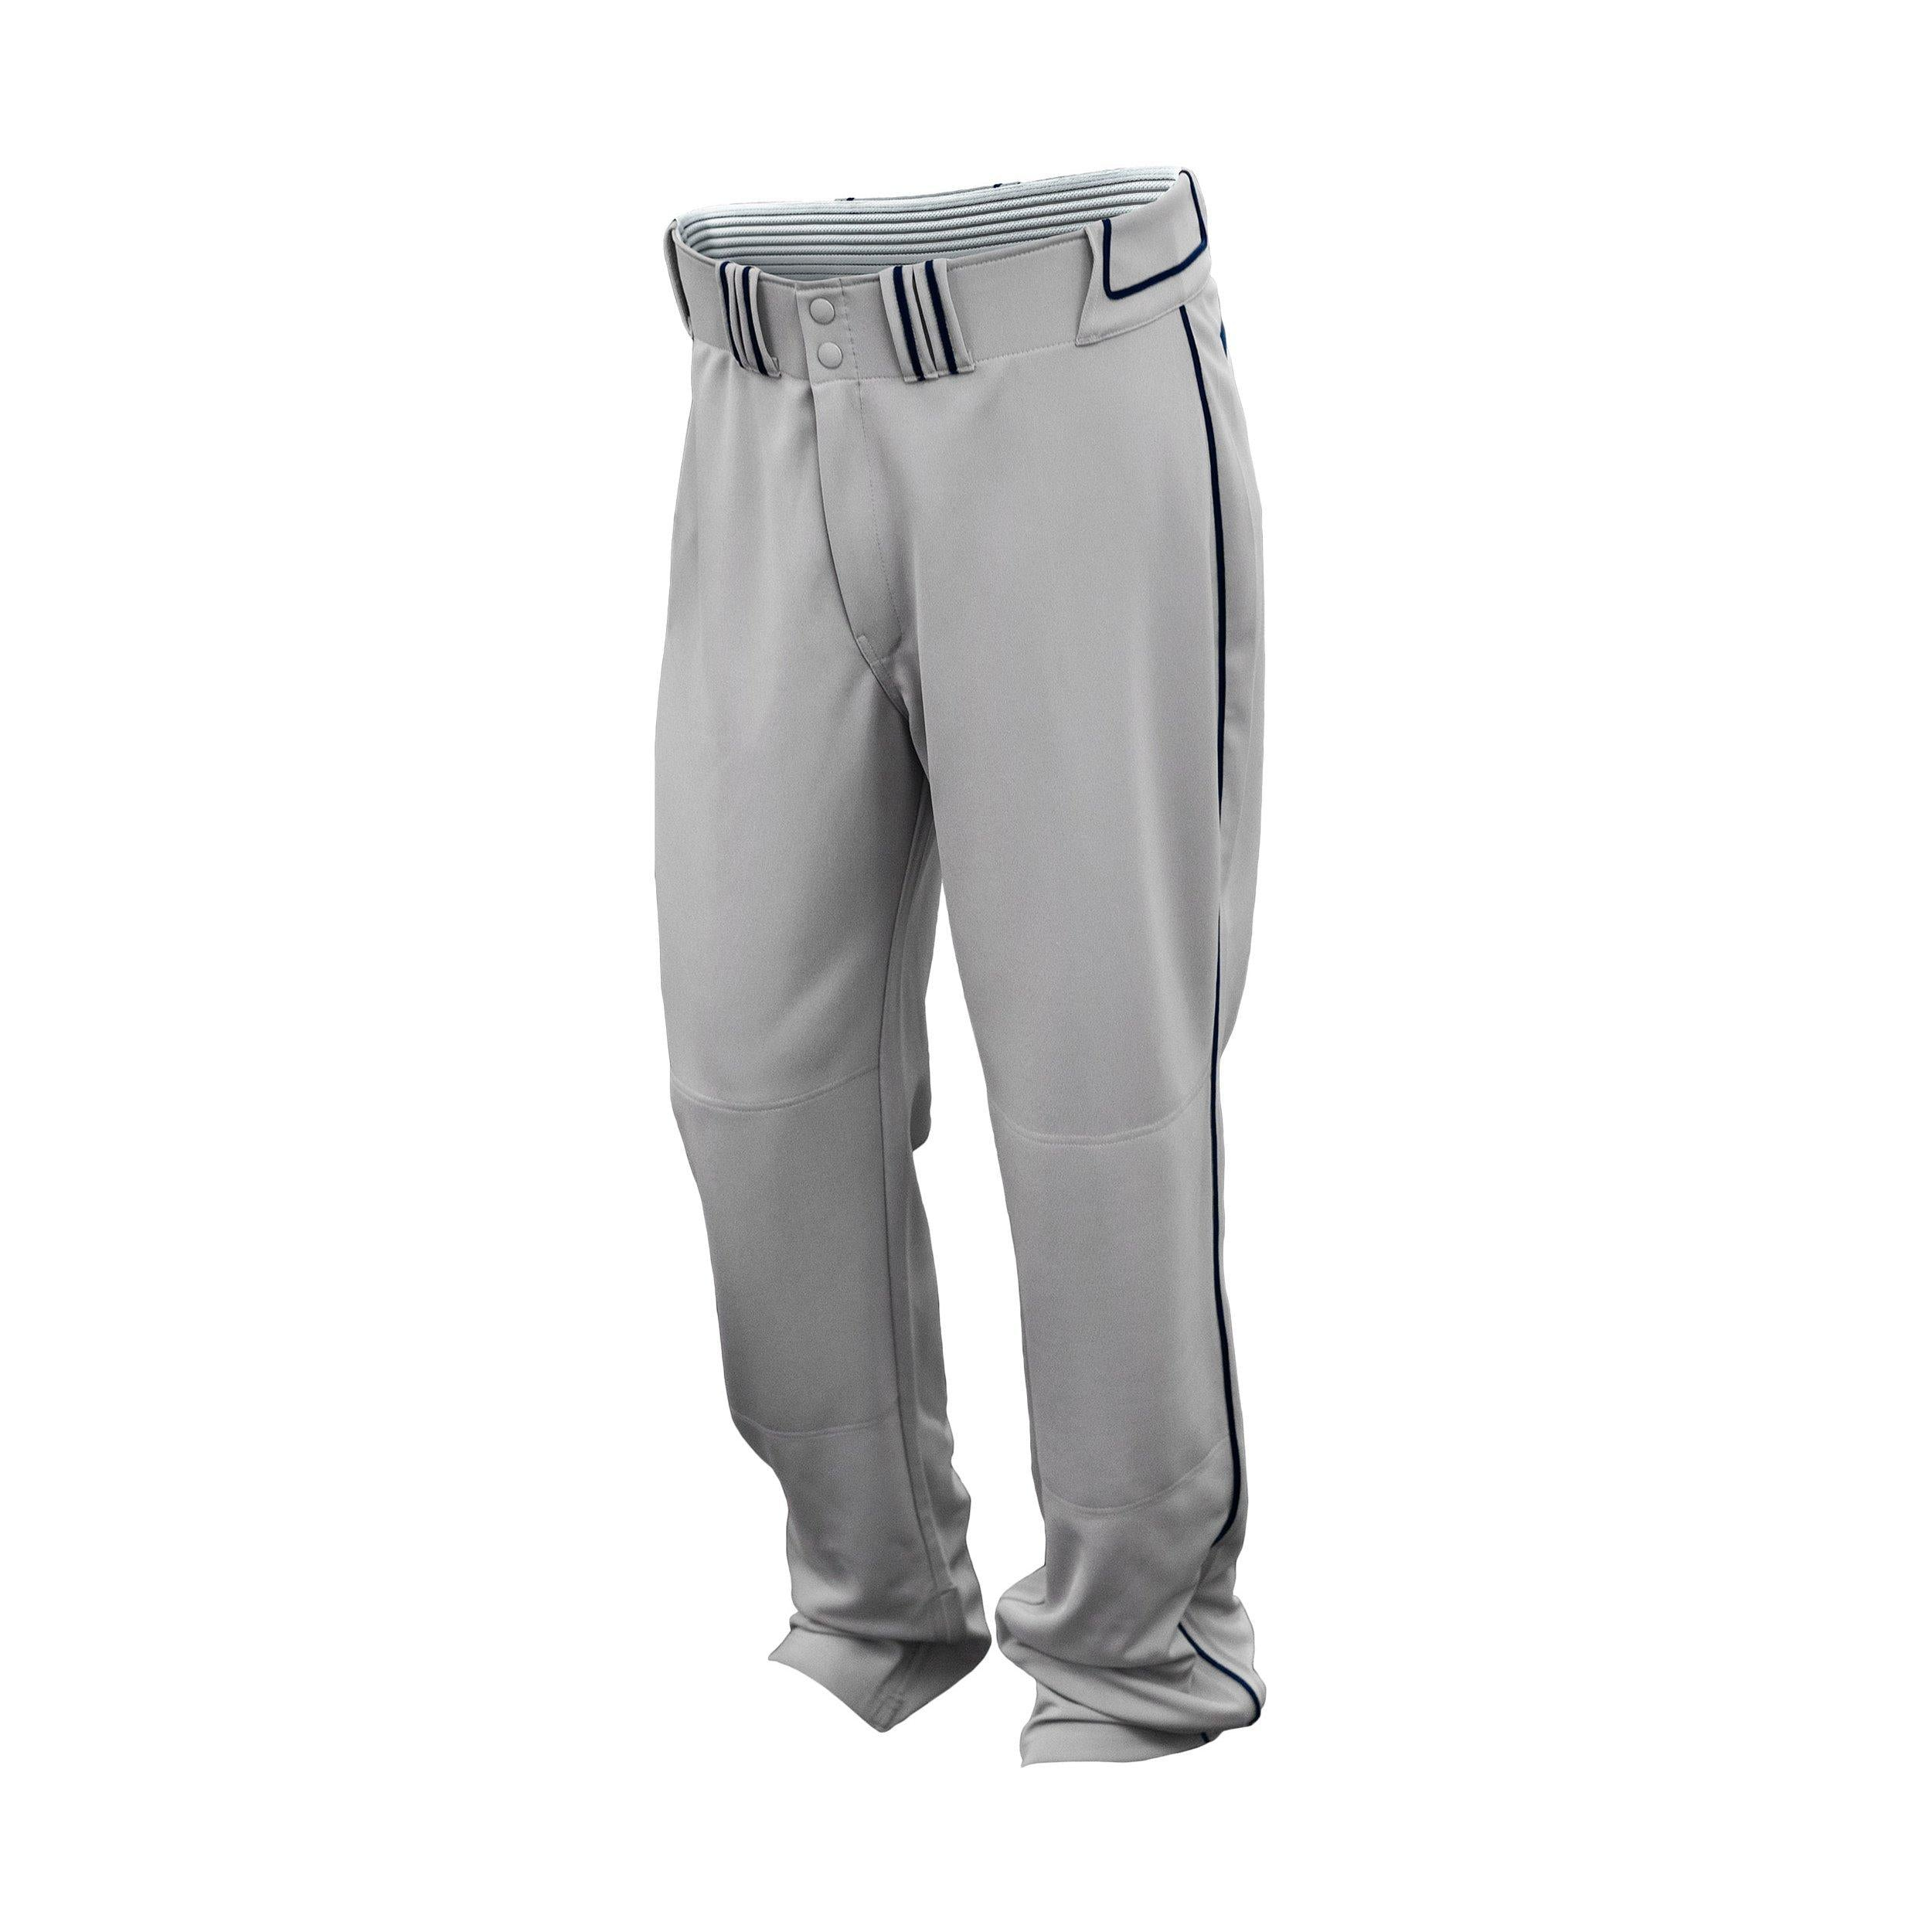 Easton Walk-Off Adult Piped Baseball Pant